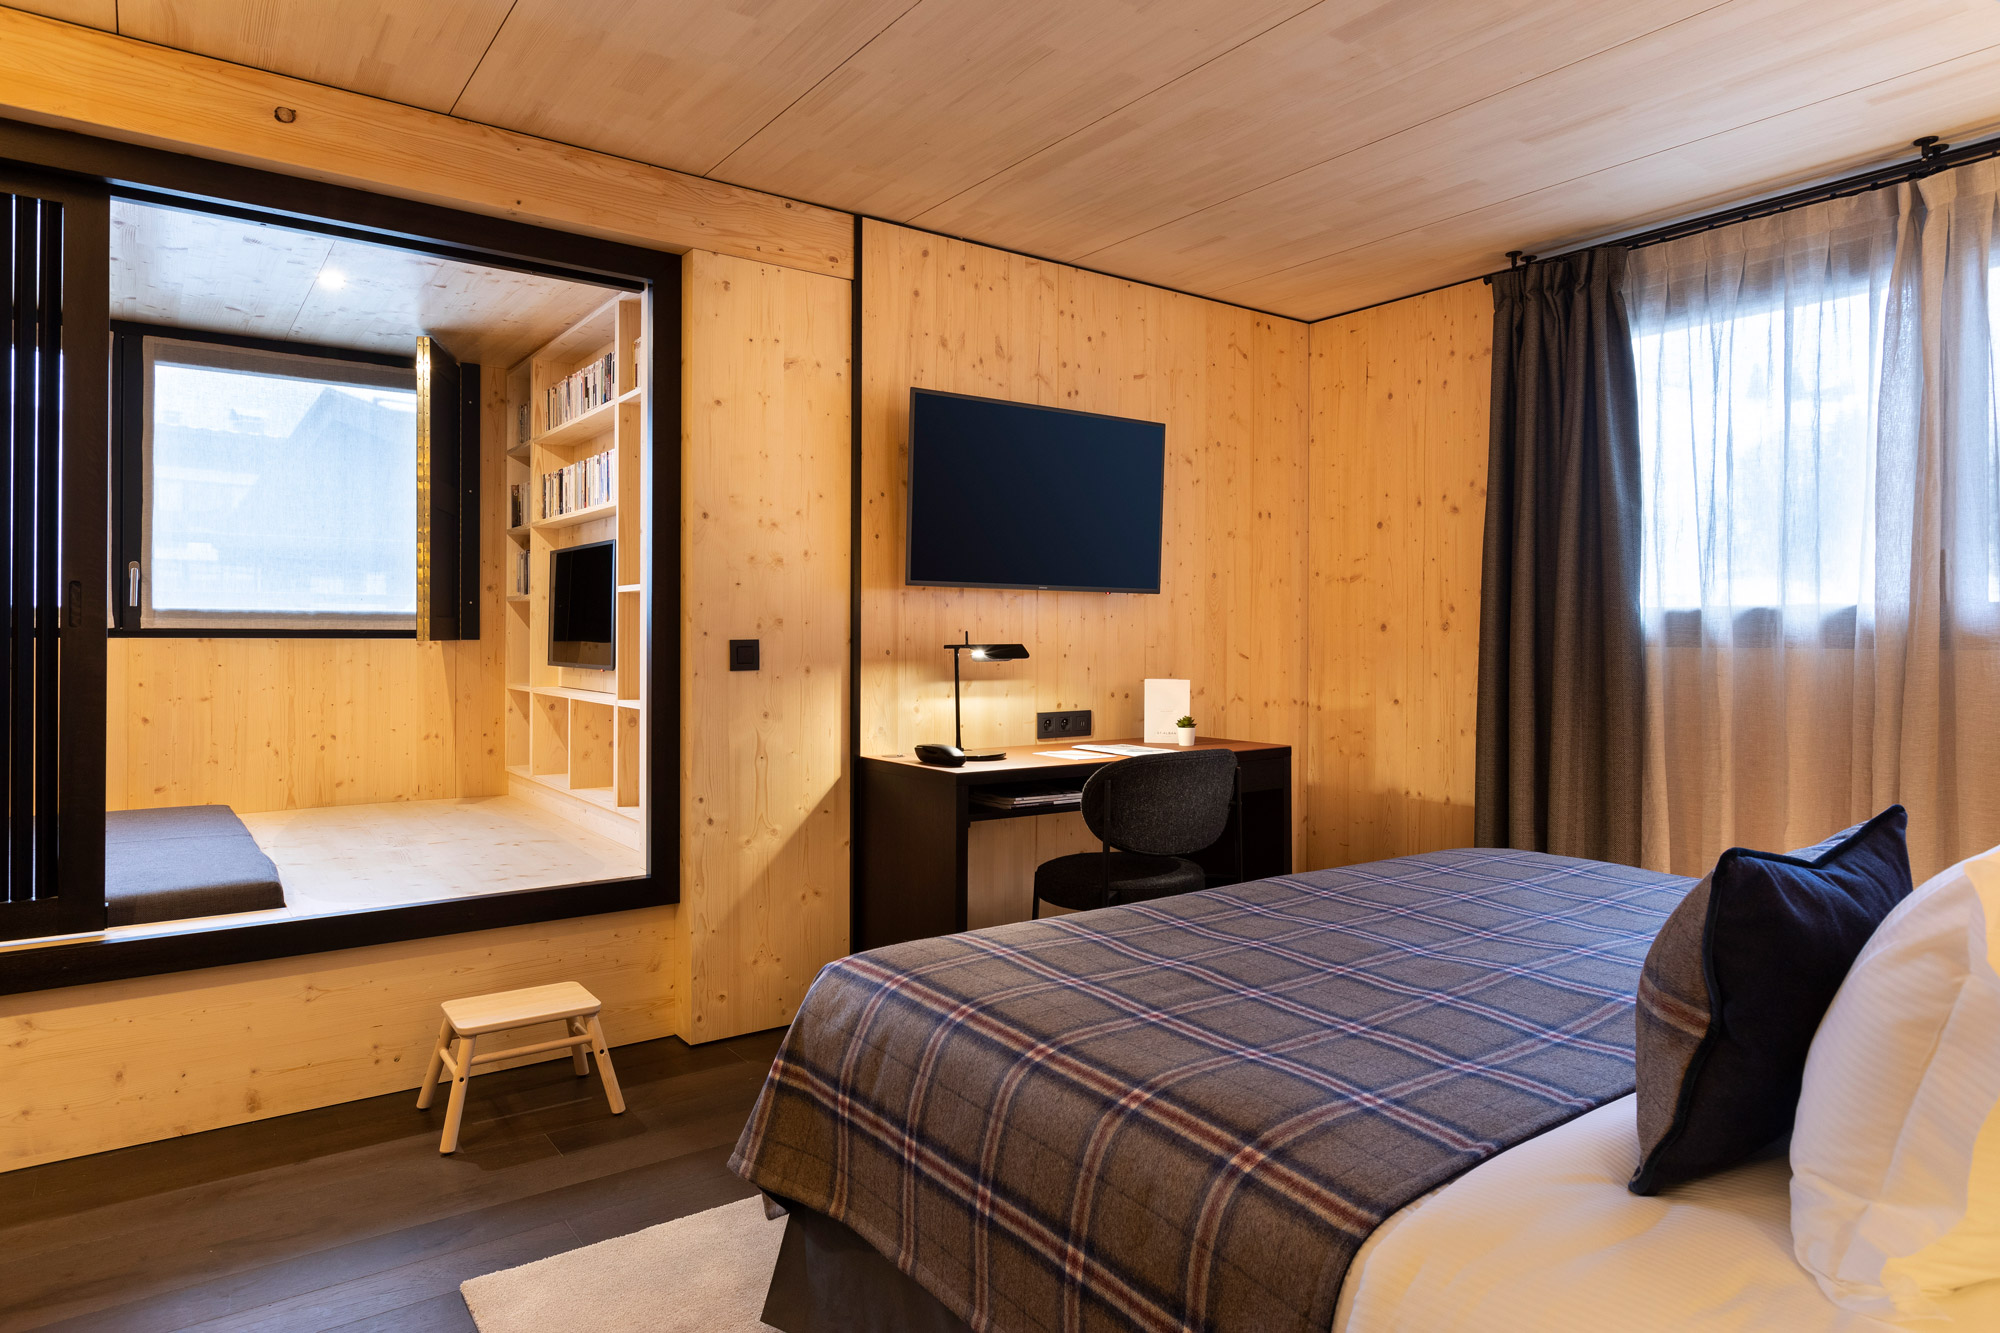 St-Alban-Hotel-&-Spa—Deluxe